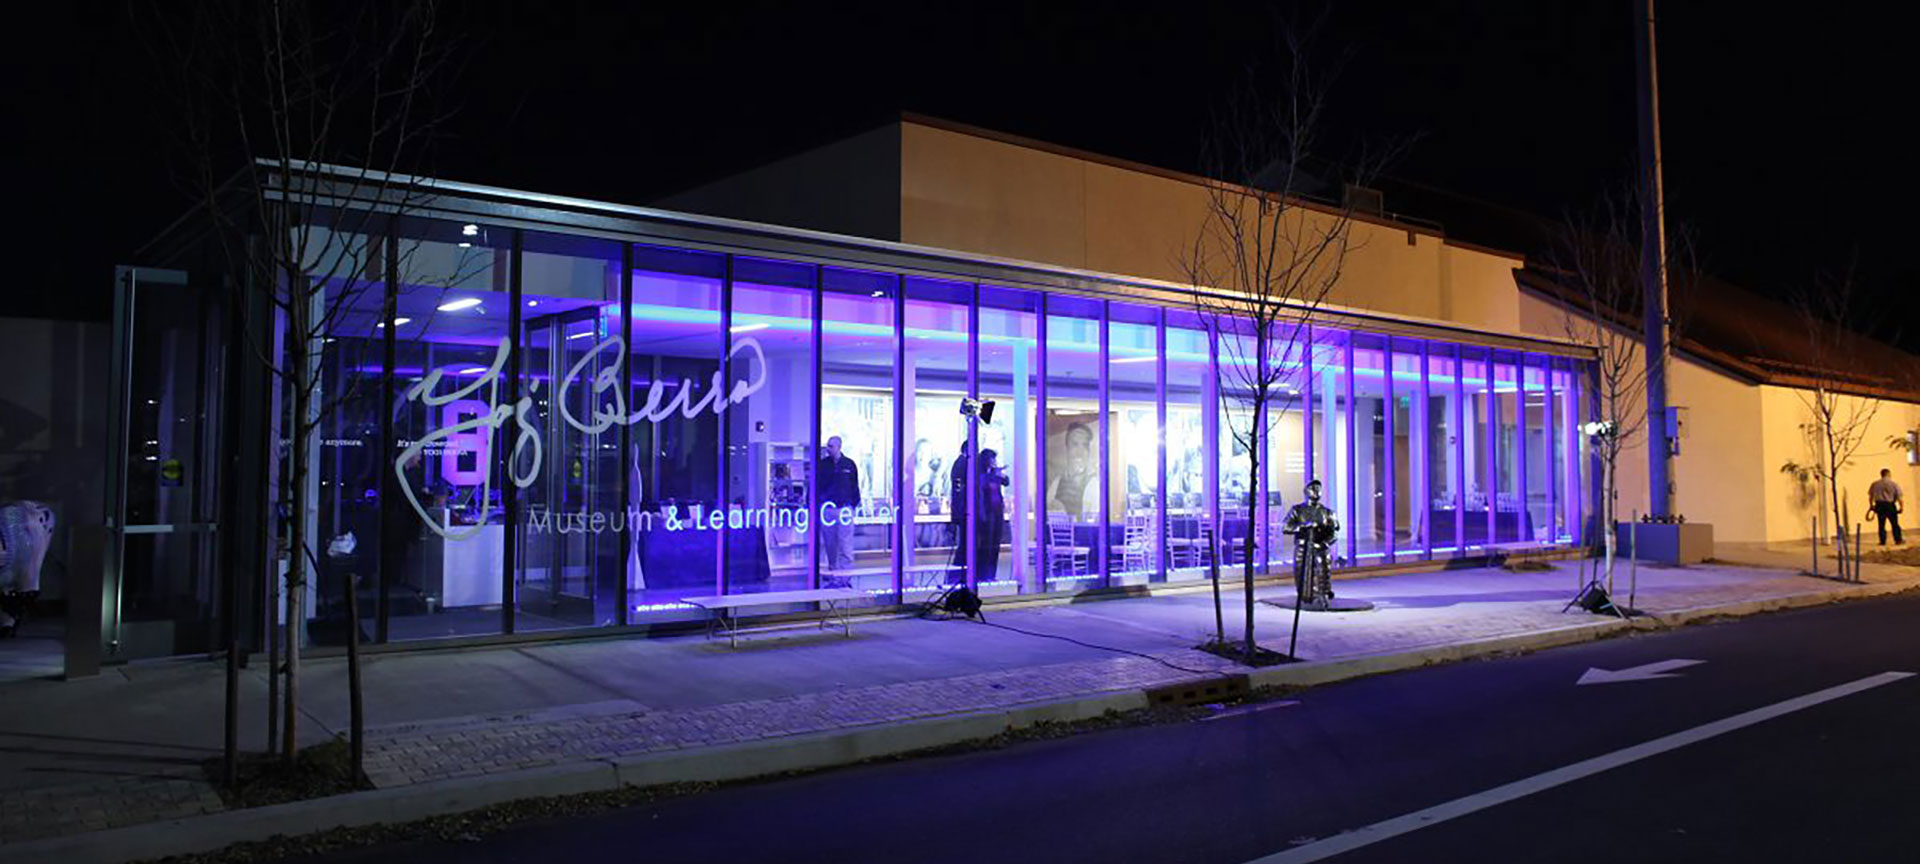 Outside of the Yogi Berra Museum & Learning Center, at night